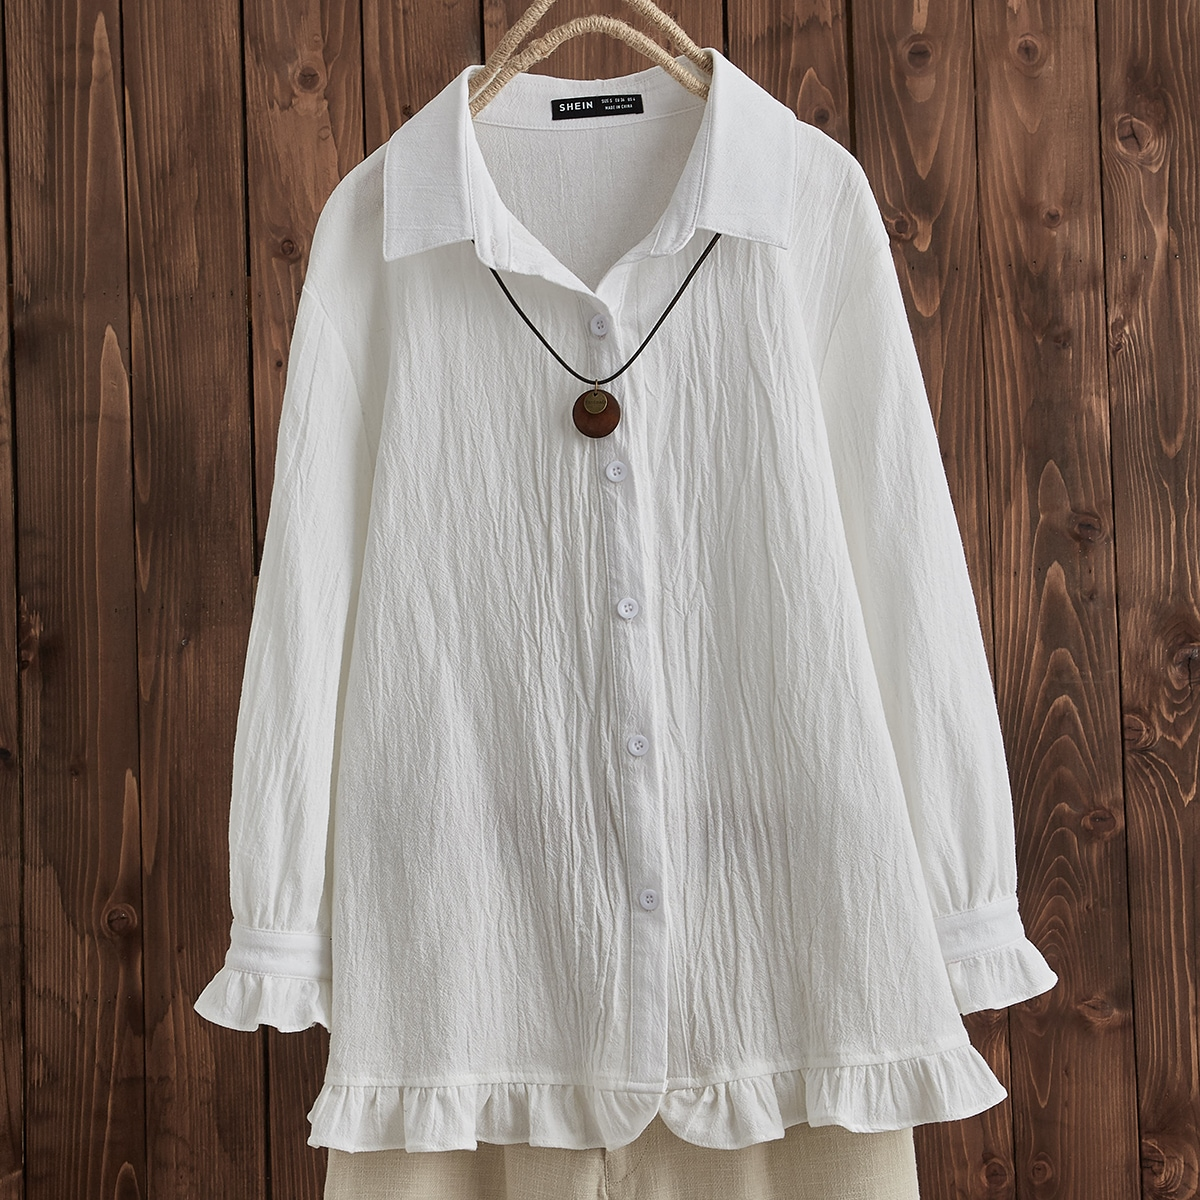 SHEIN / Ruffle Hem Button Up Blouse Without Necklace